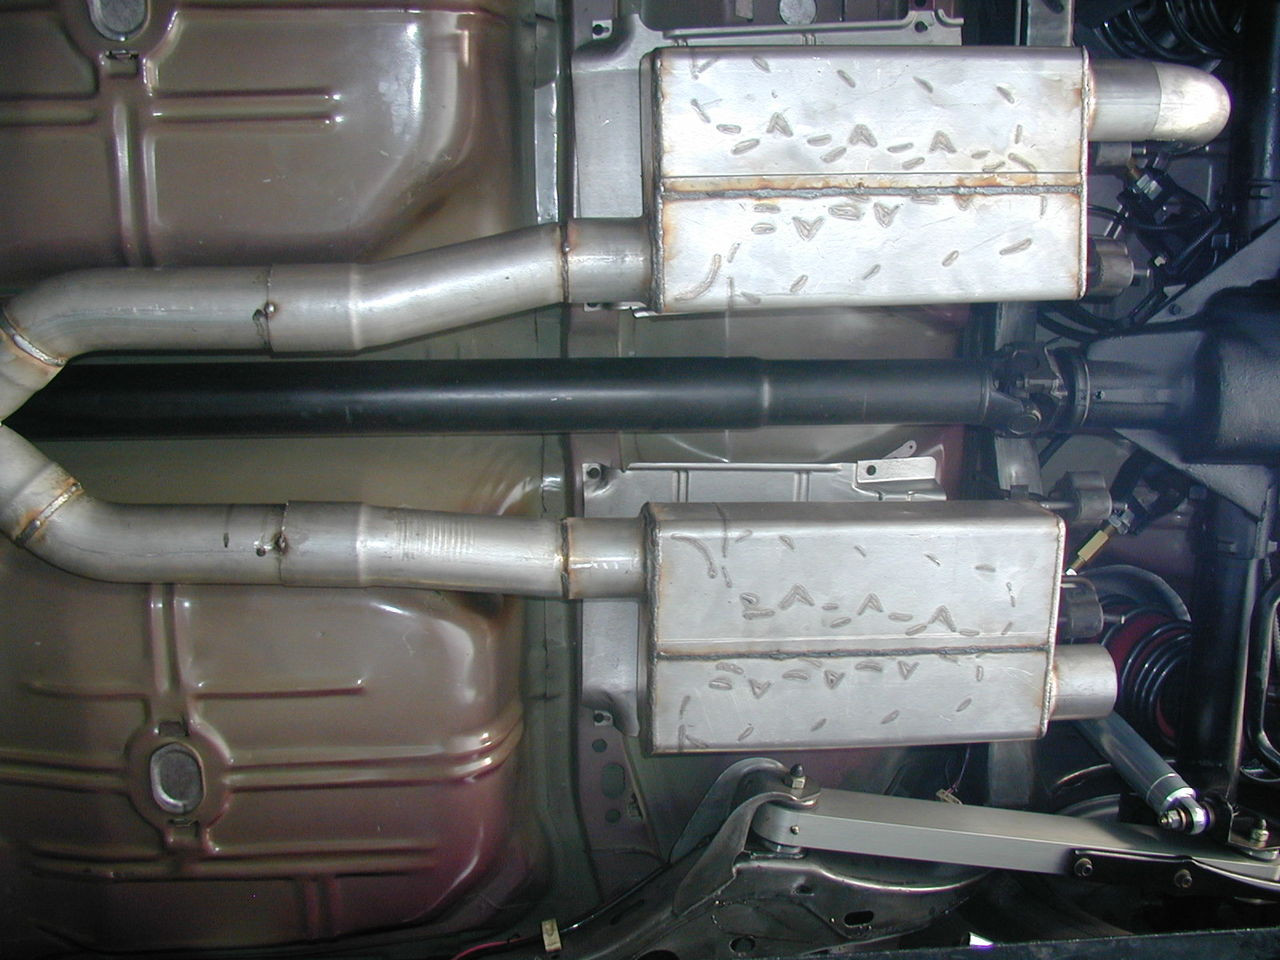 "1X389434 - 3"" Impala System with Sportsman 3000XL Mufflers"